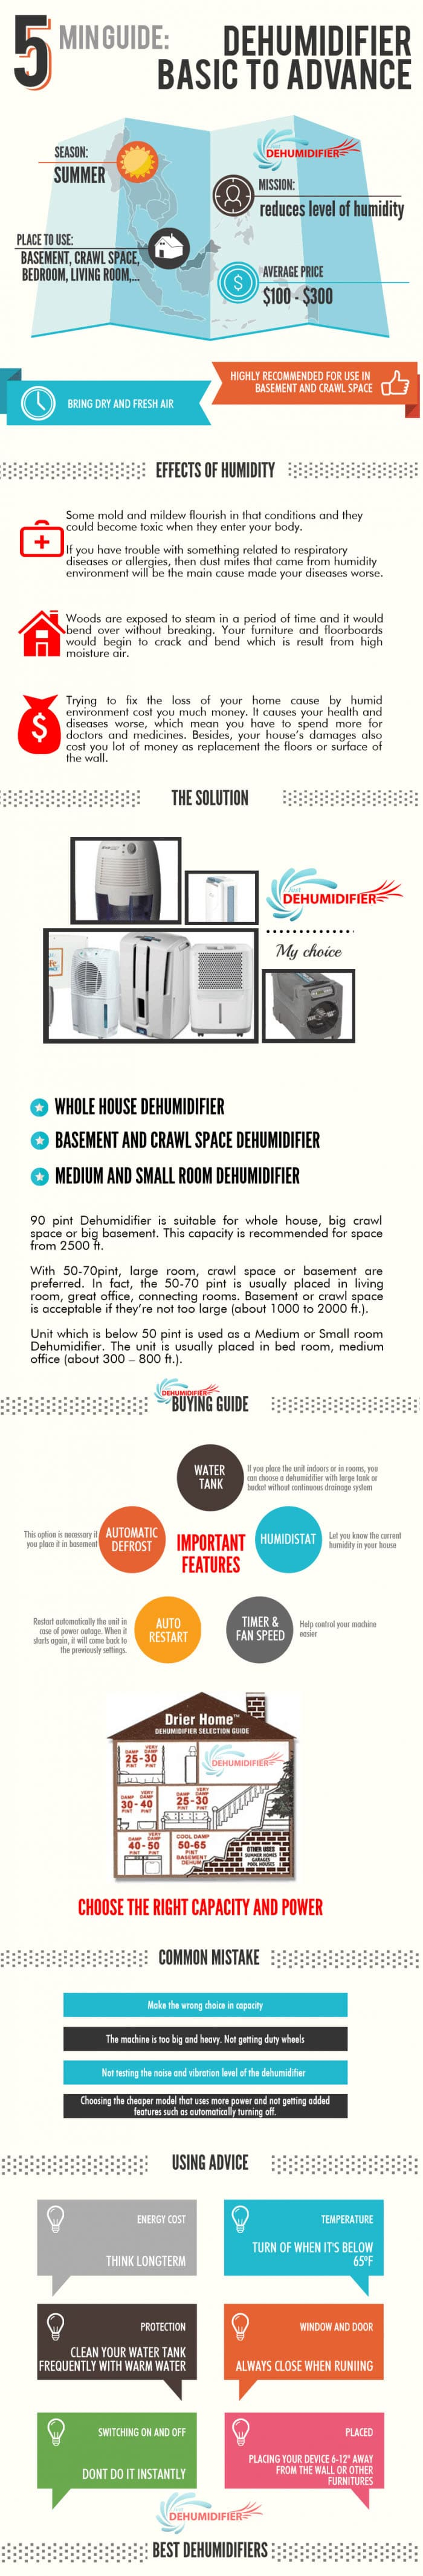 Dehumidifier Basic to Advance Infographic